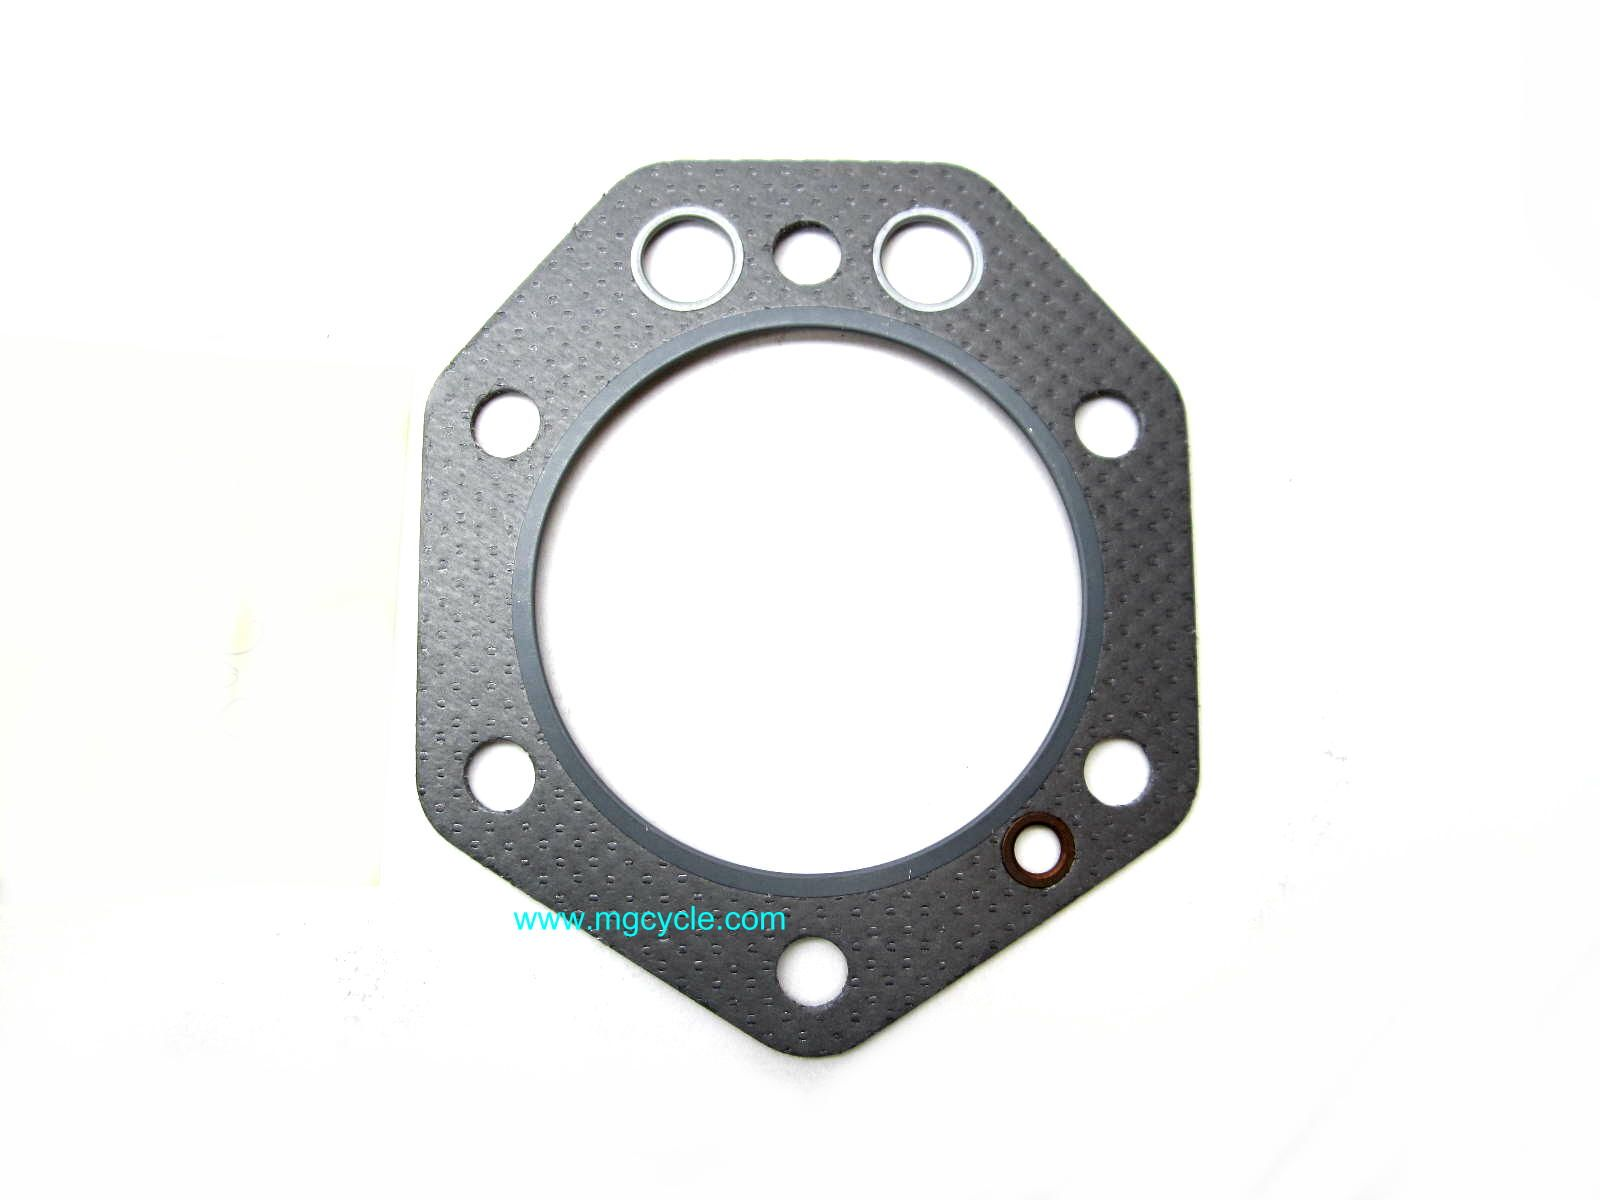 Head gasket for 88mm, Convert G5 SP CX100